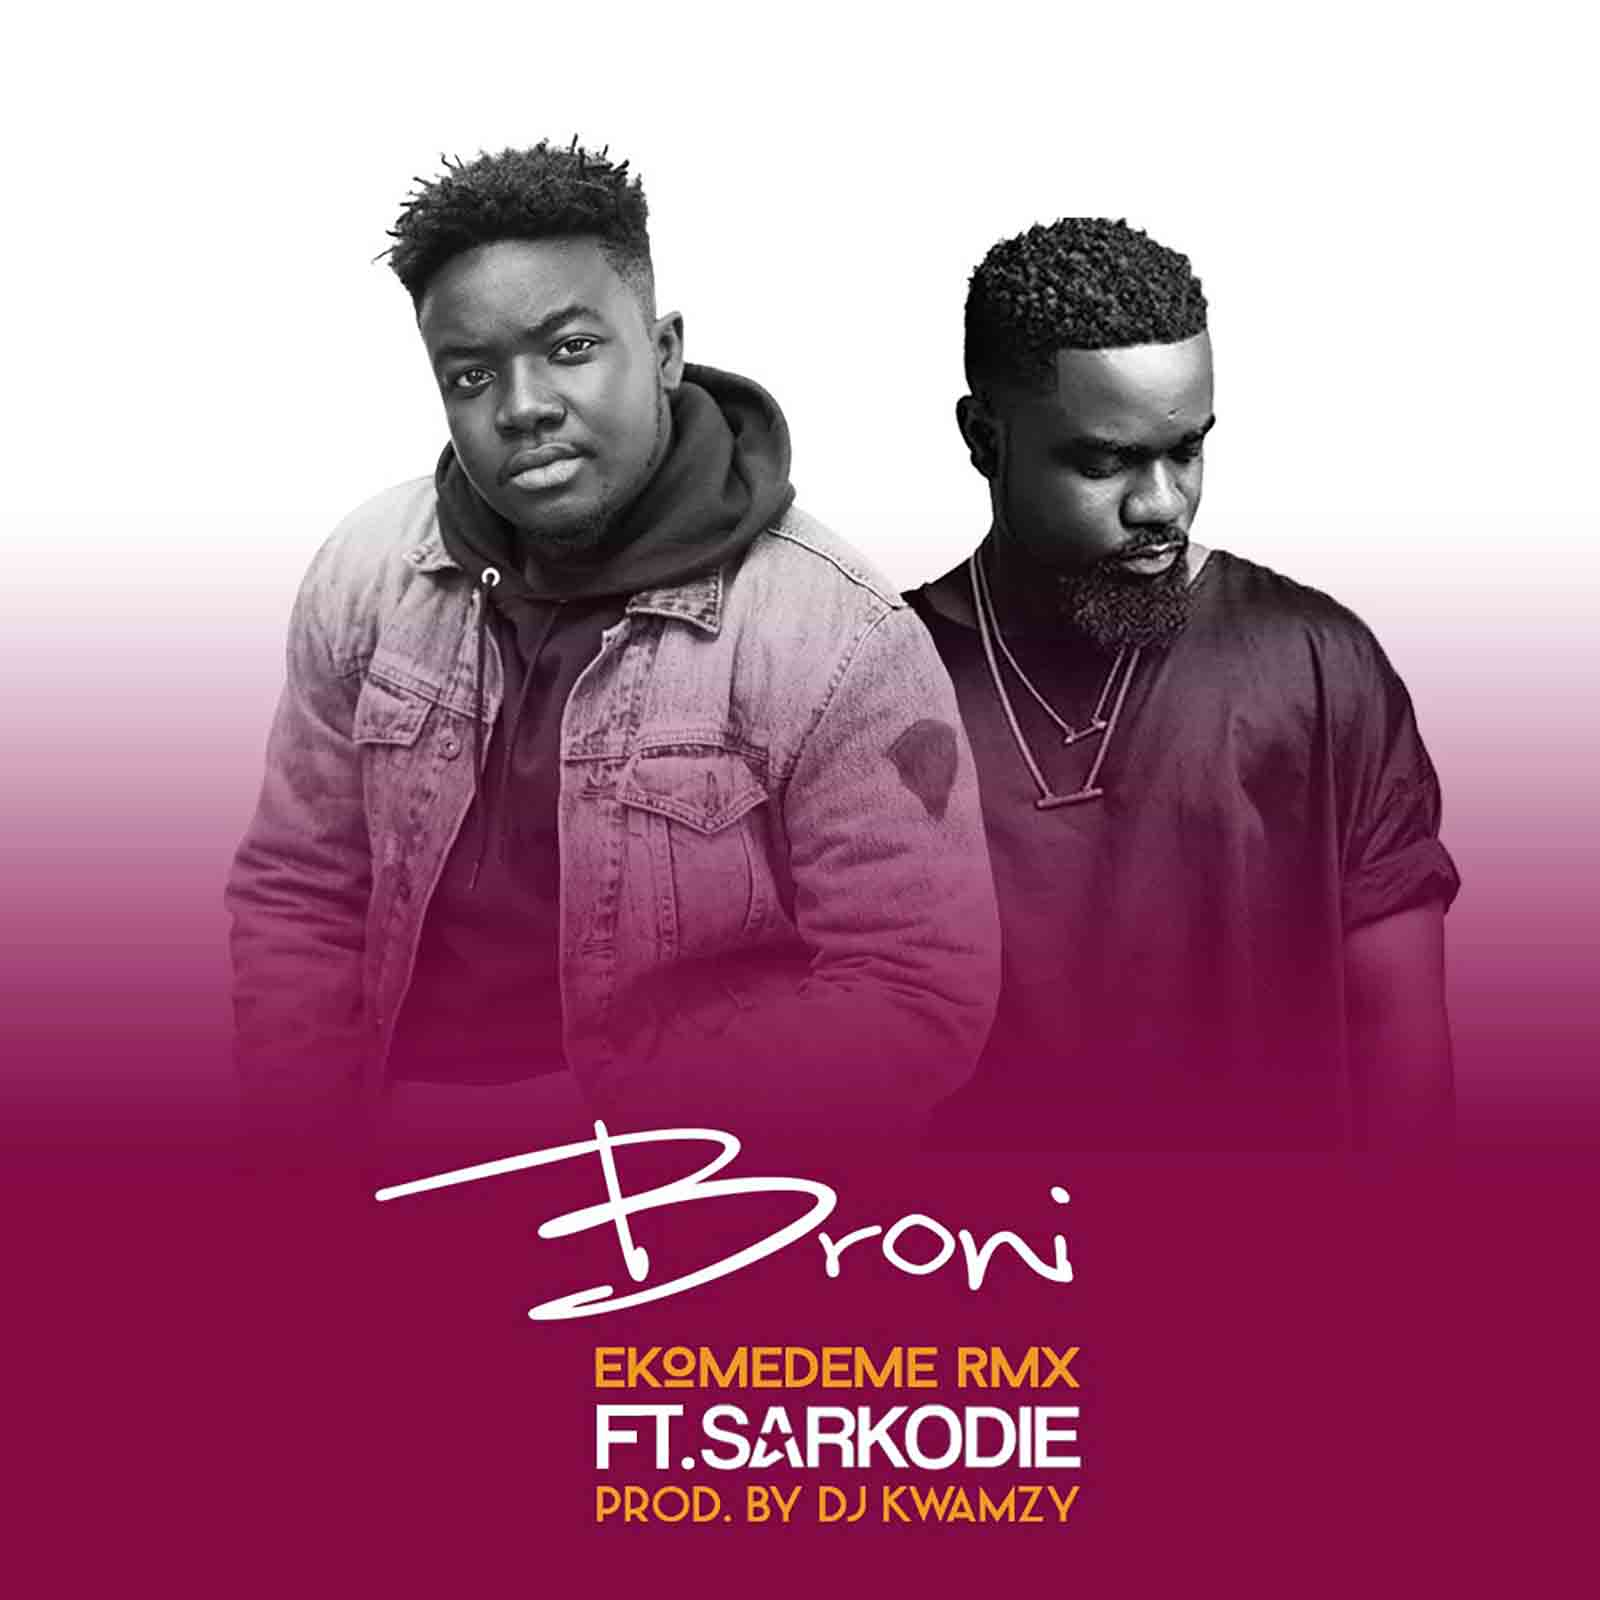 Ekomedeme remix by Broni ft. Sarkodie